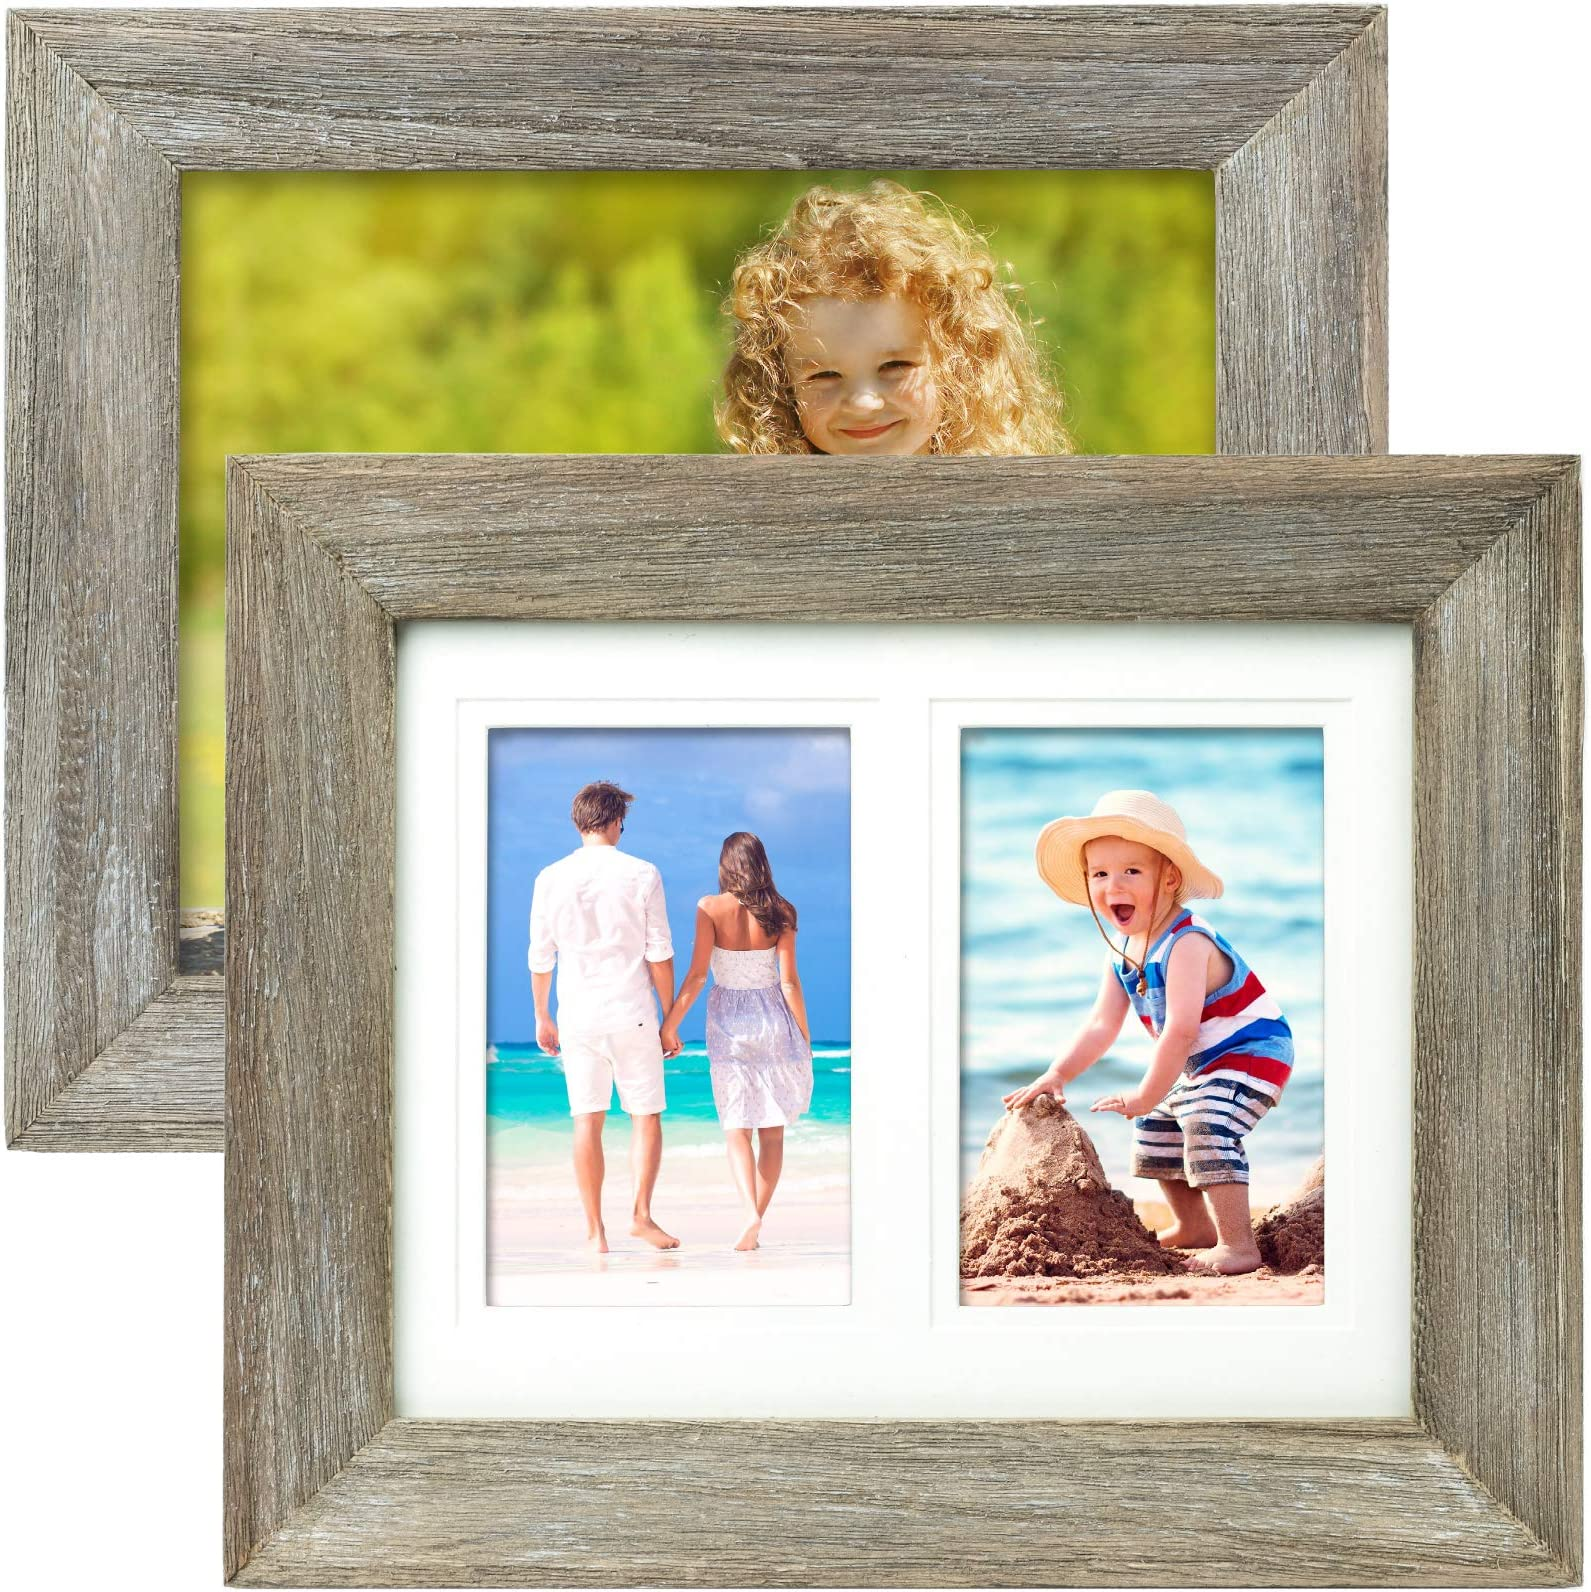 Made to Display 3 4x6 Photos 4x6 Aspen White Collage Distressed Wood Frames Americanflat 10 Pack